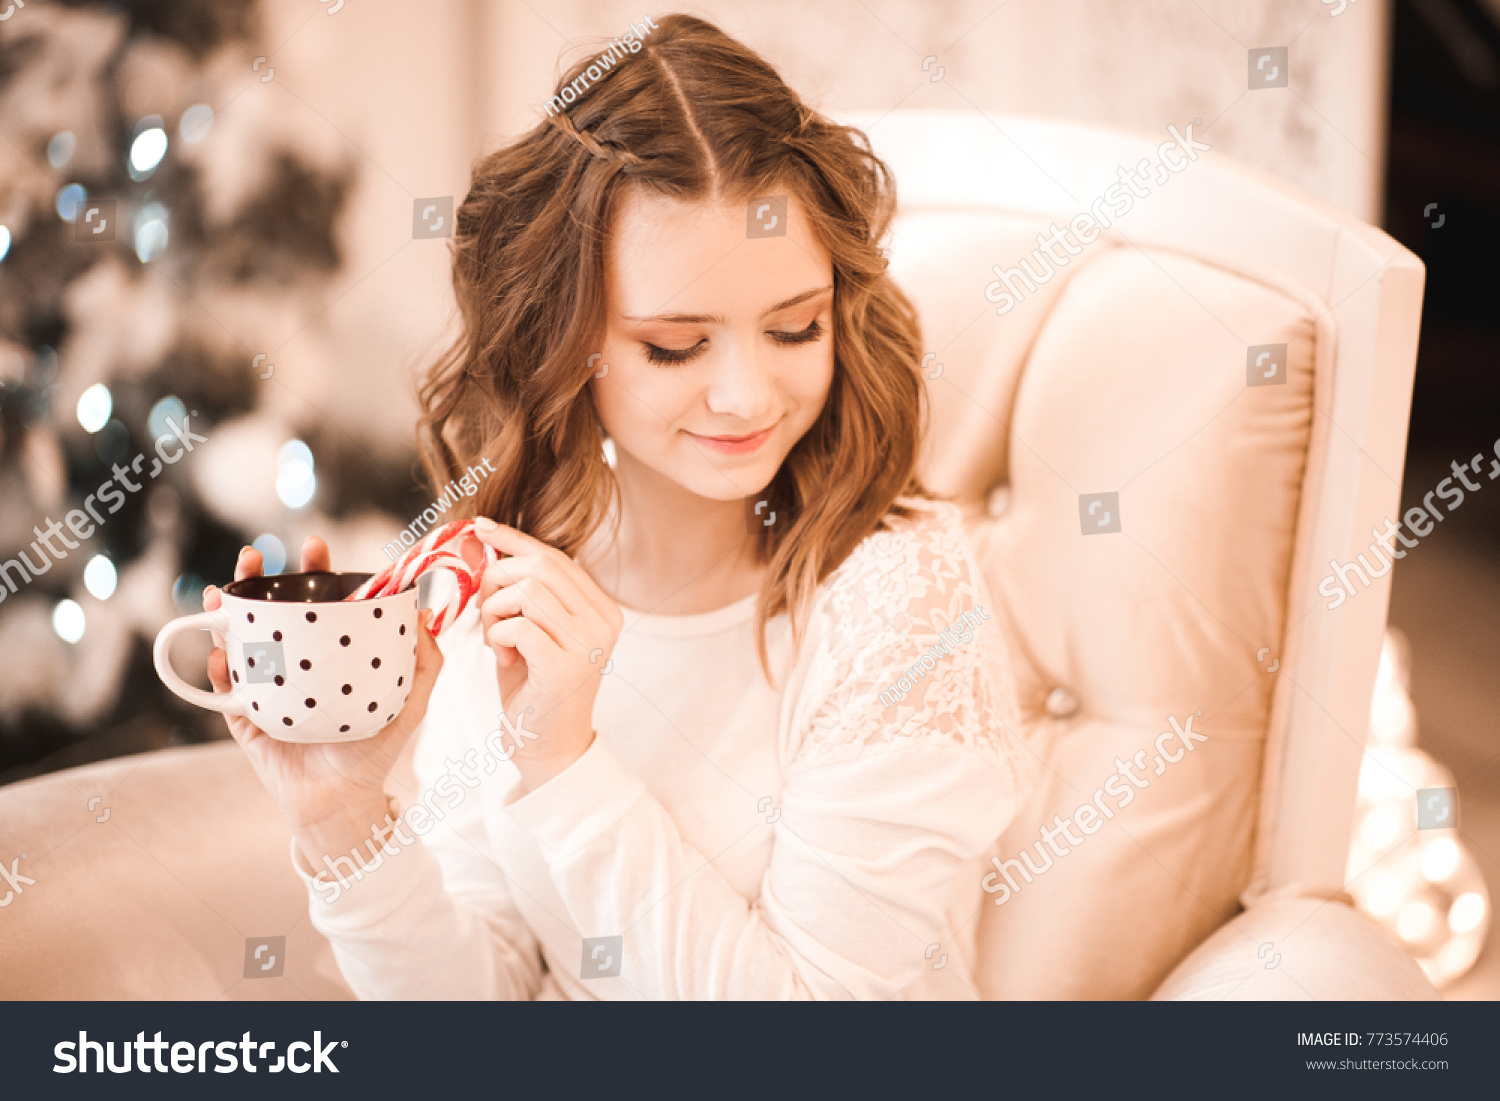 aa50c746f Smiling Teen Girl 1416 Year Old Stock Photo (Edit Now) 773574406 ...